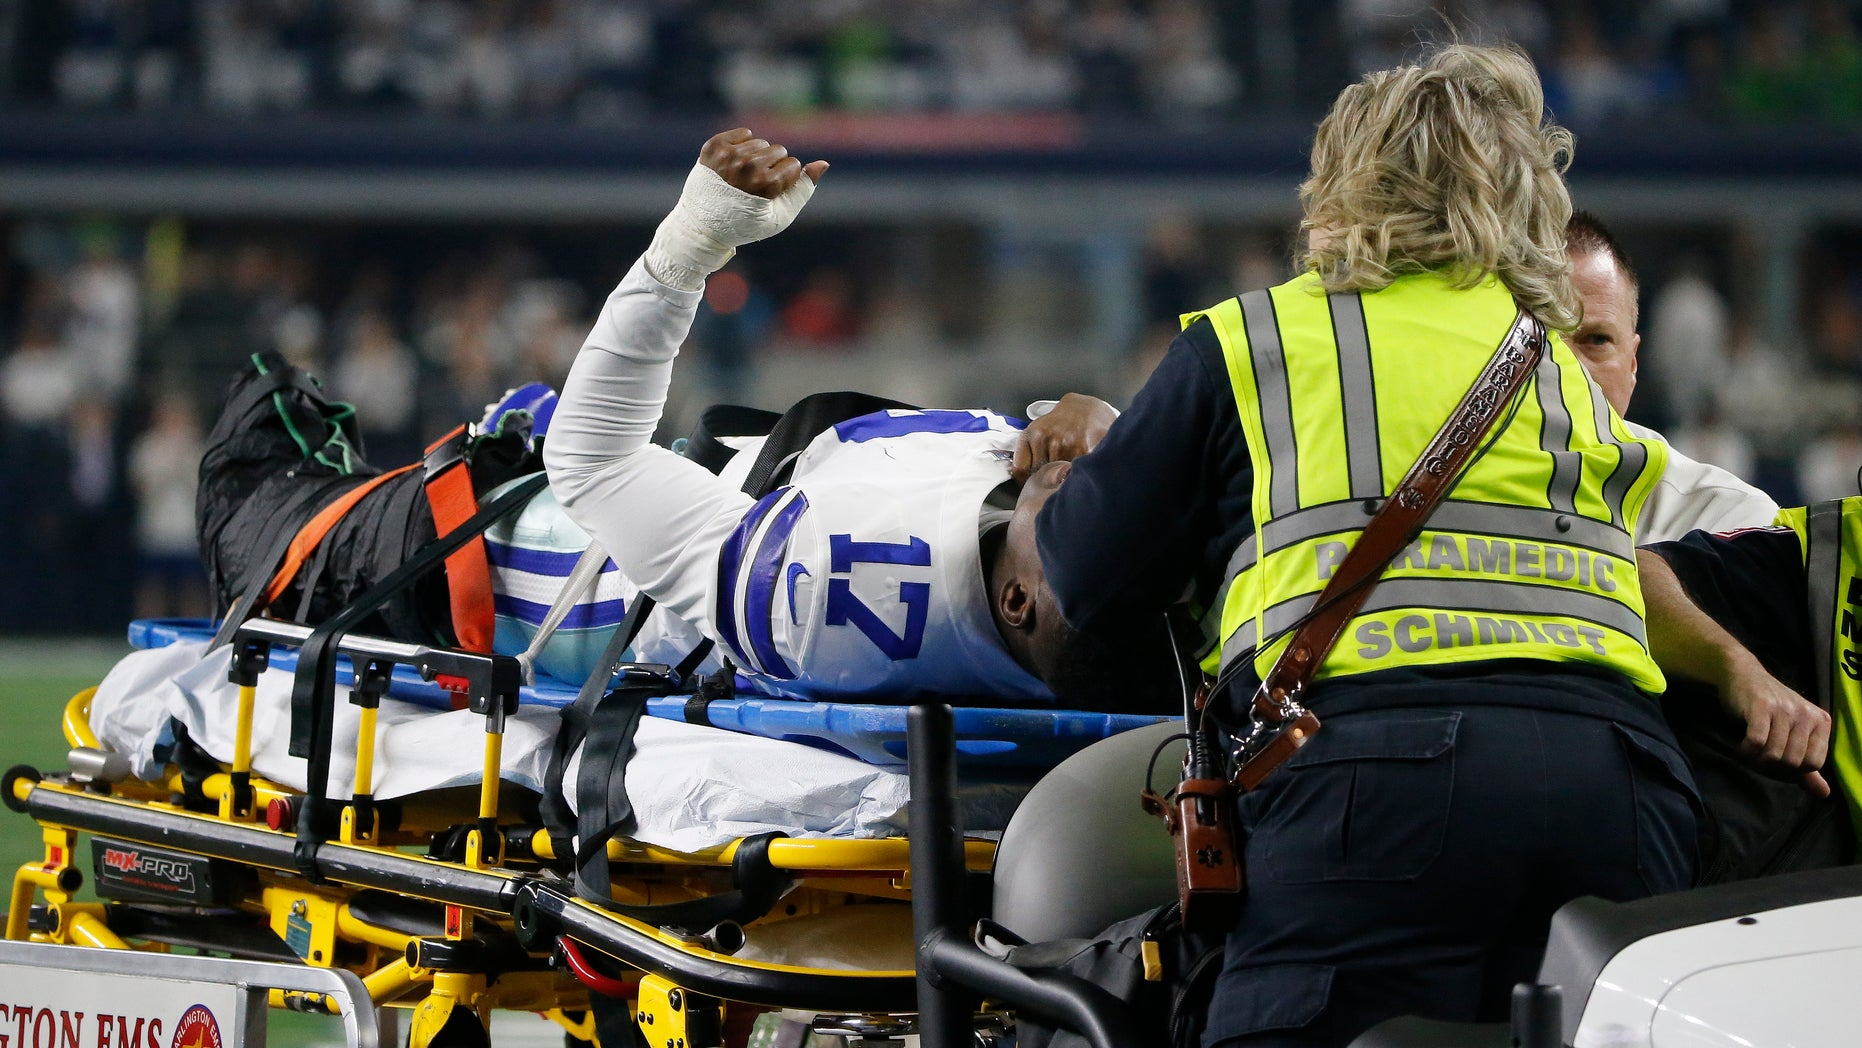 Dallas Cowboys wide receiver Allen Hurns (17) is taken from the field after an injury against the Seattle Seahawks during the first half of the NFC wild-card NFL football game in Arlington, Texas, Saturday, Jan. 5, 2019. (AP Photo/Michael Ainsworth)